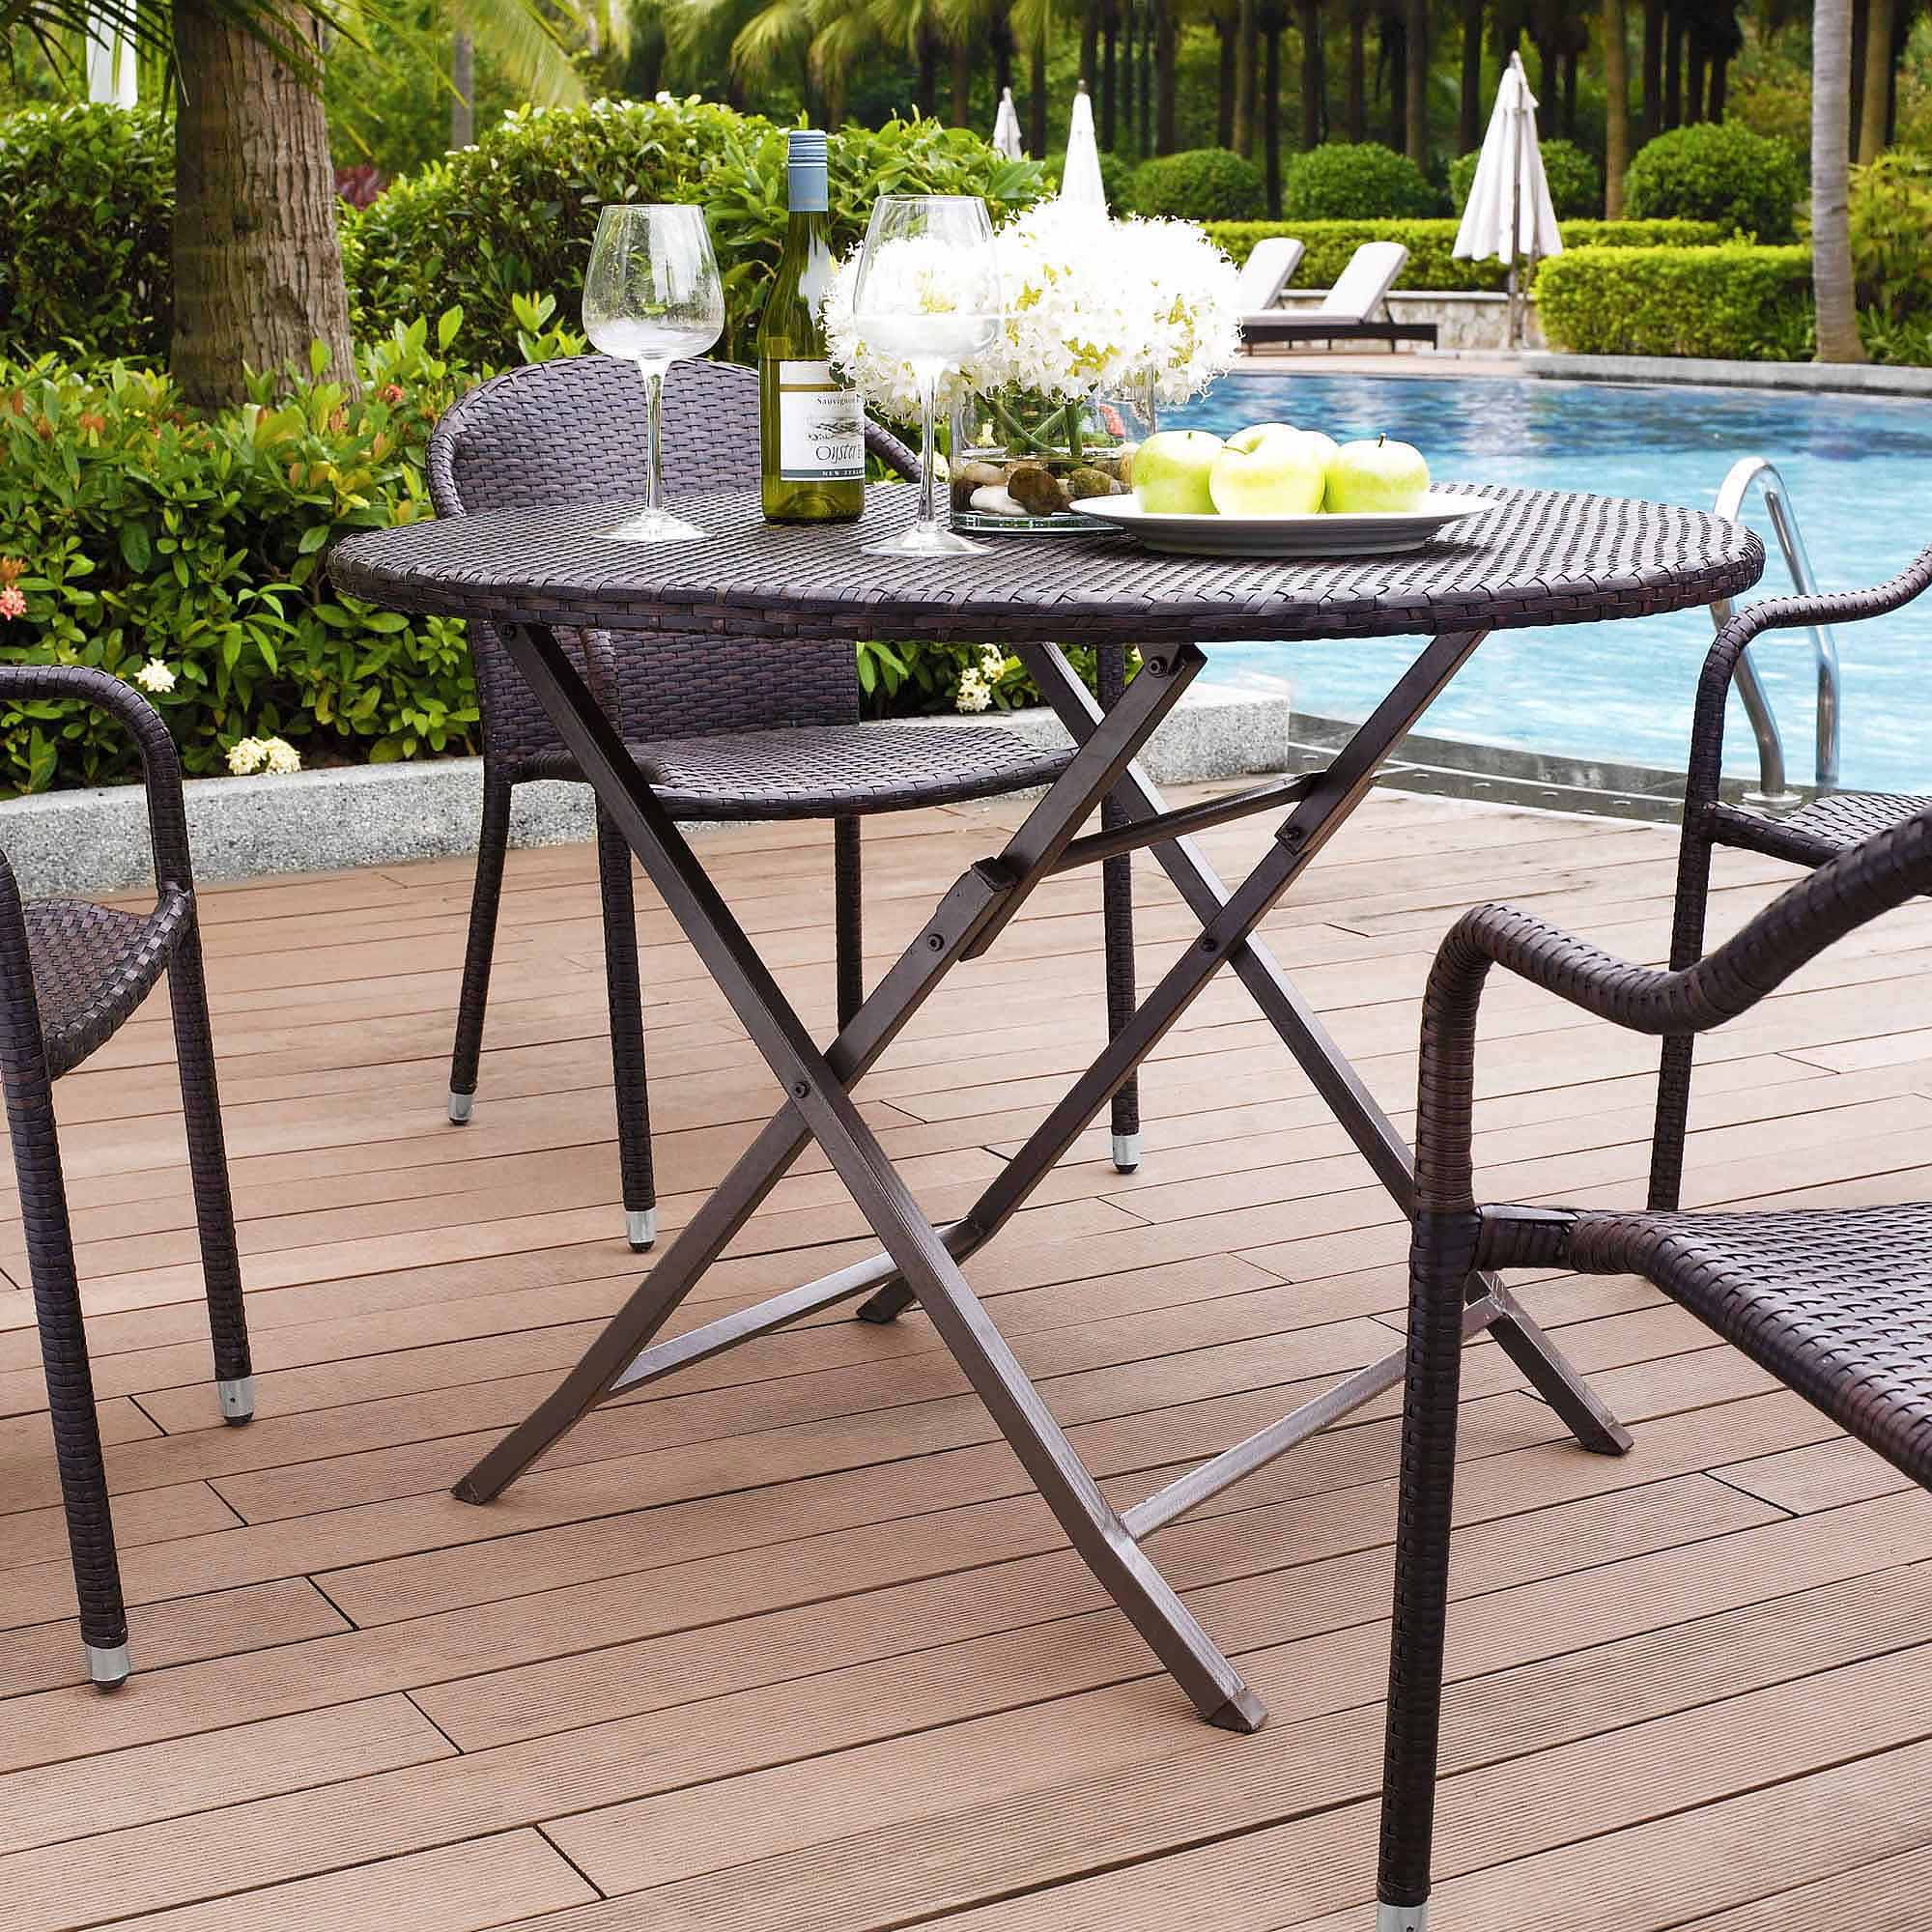 Superb Crosley Furniture Palm Harbor Outdoor Wicker Folding Table